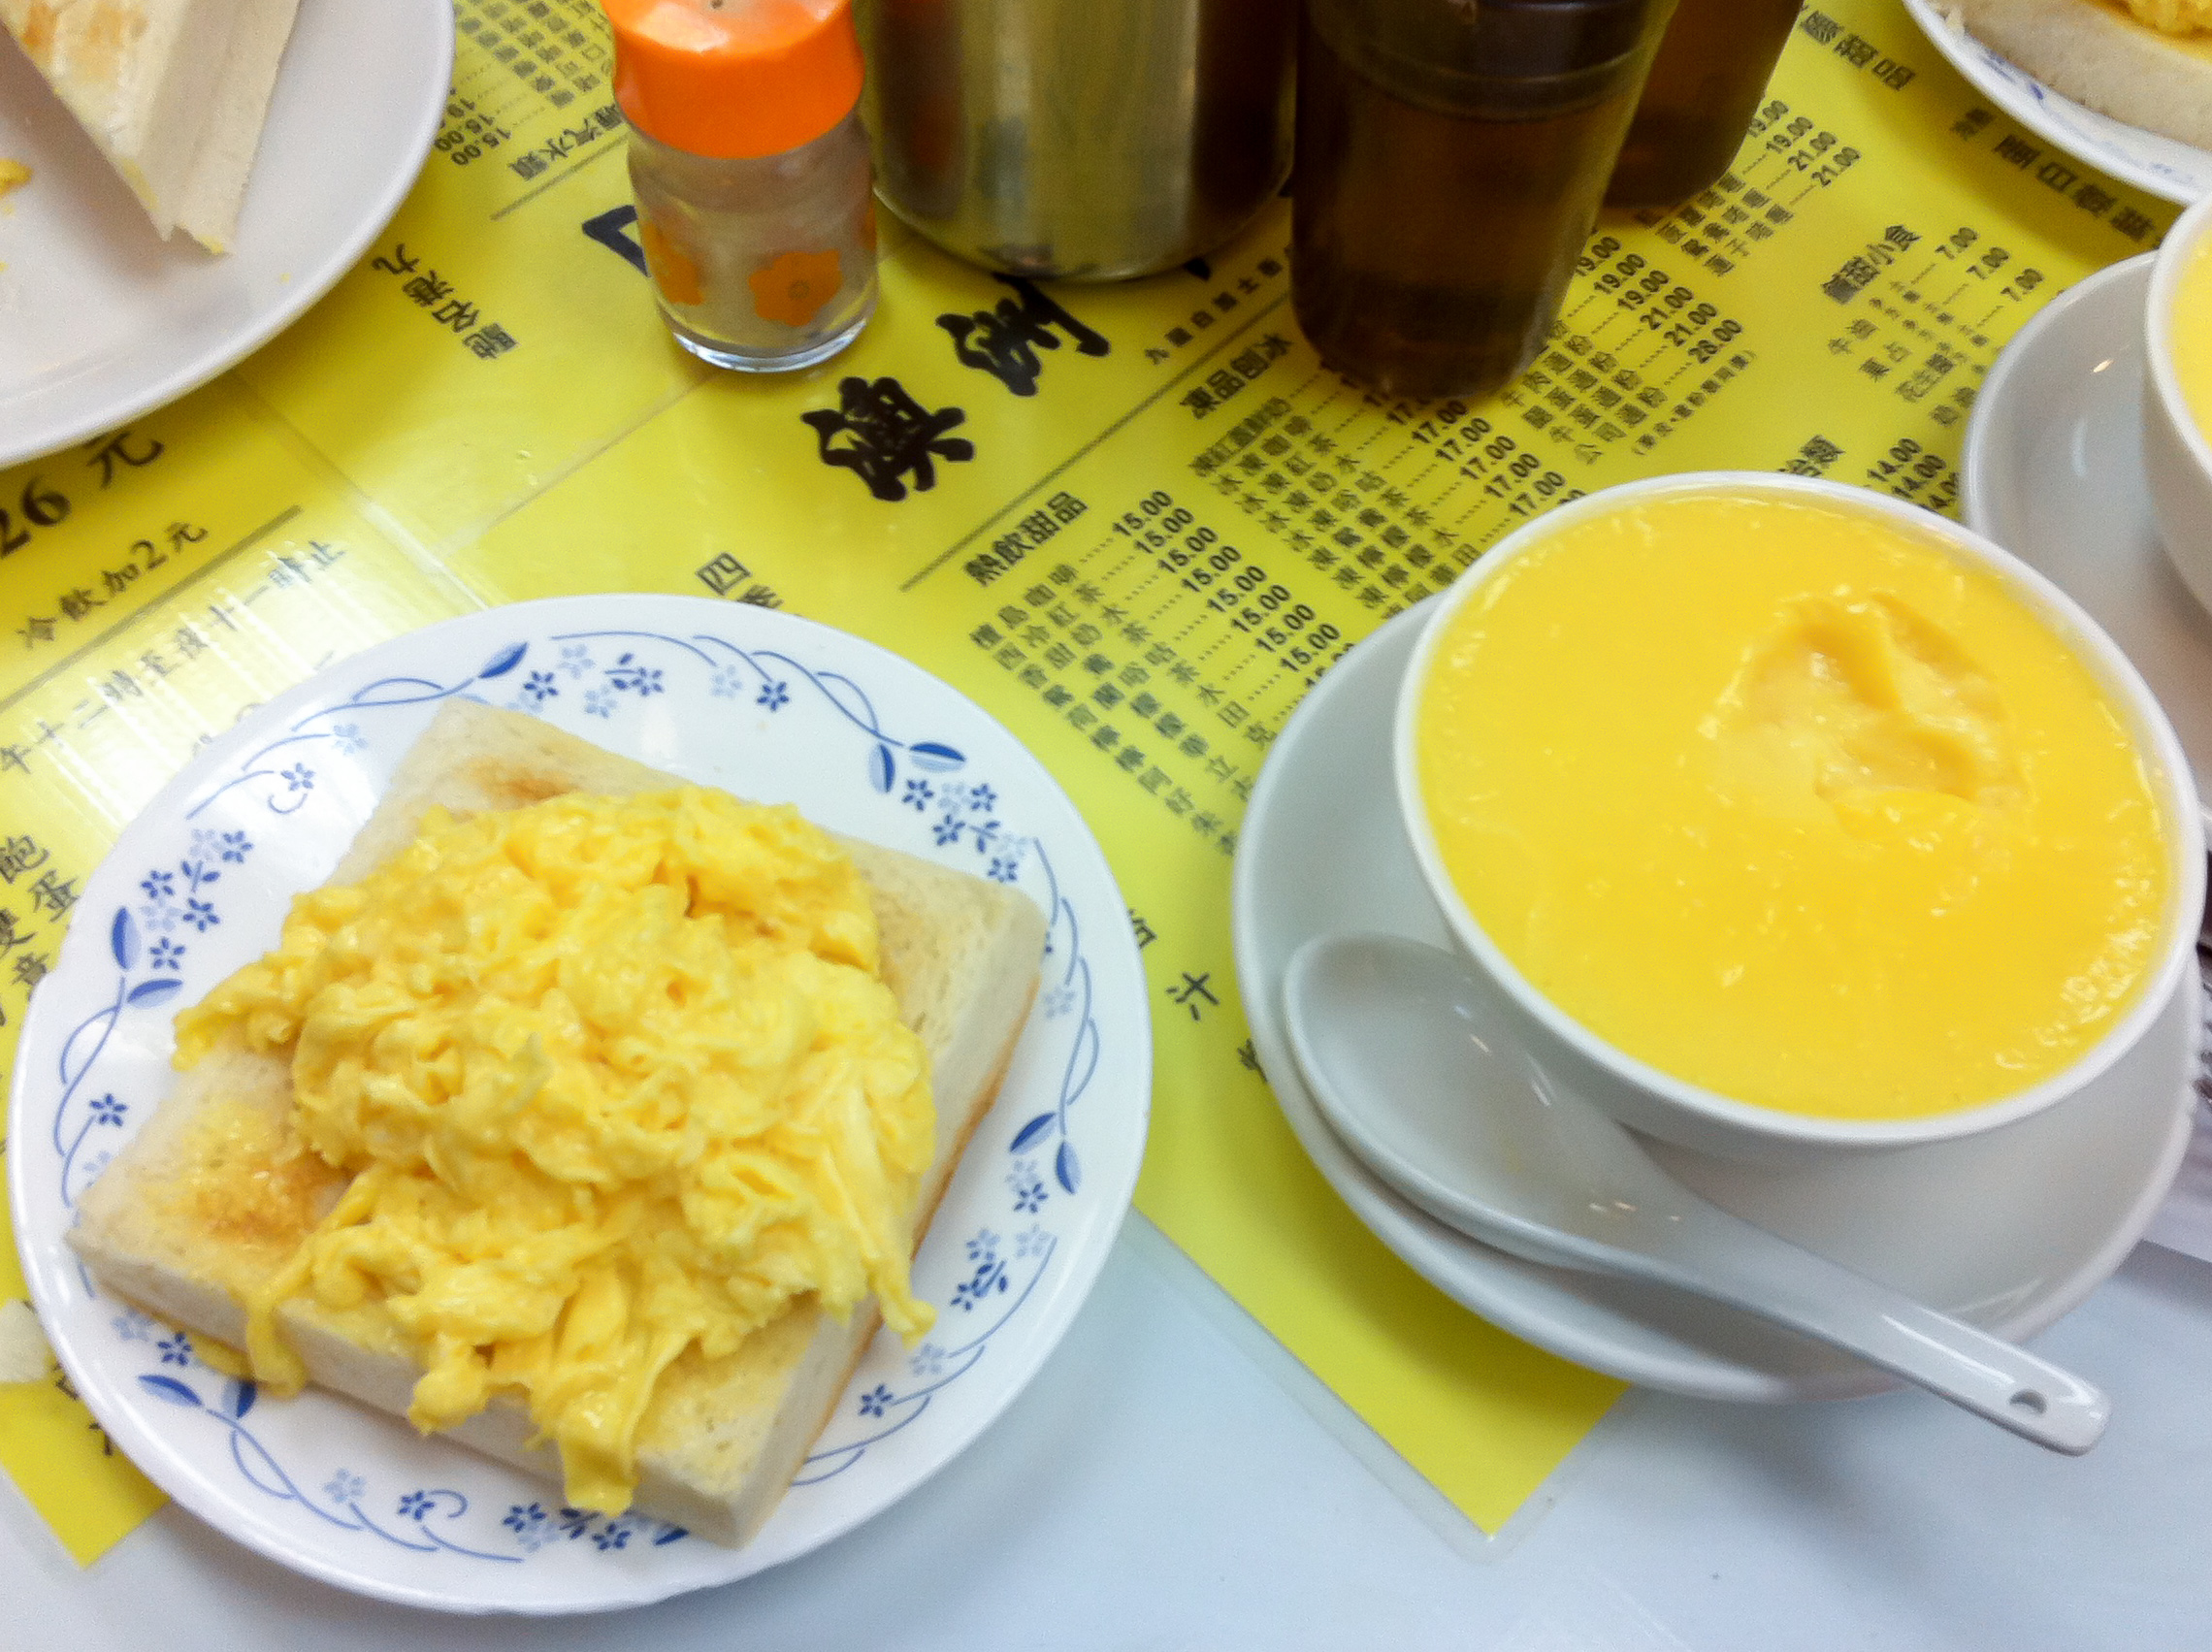 Scrambled eggs and cold custard at Australia Dairy Company in Hong Kong. Photo by alphacityguides.